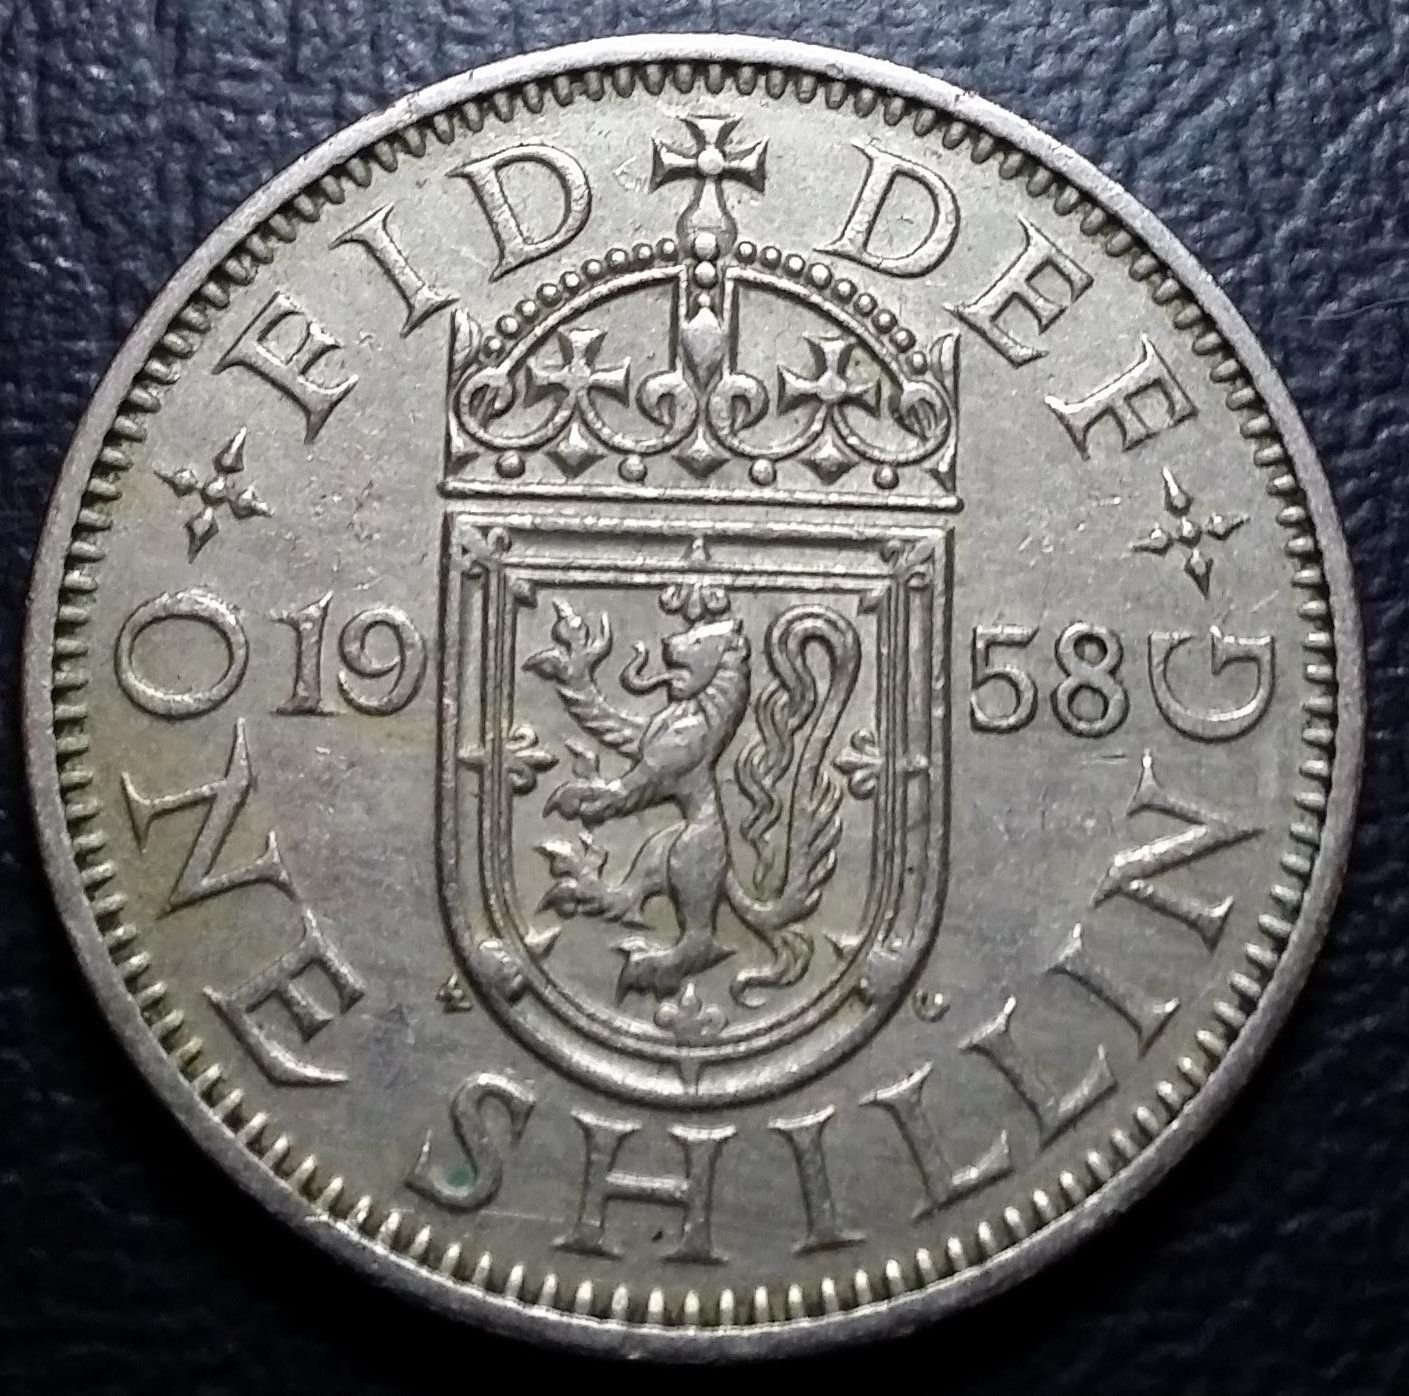 1958 one shilling coin value